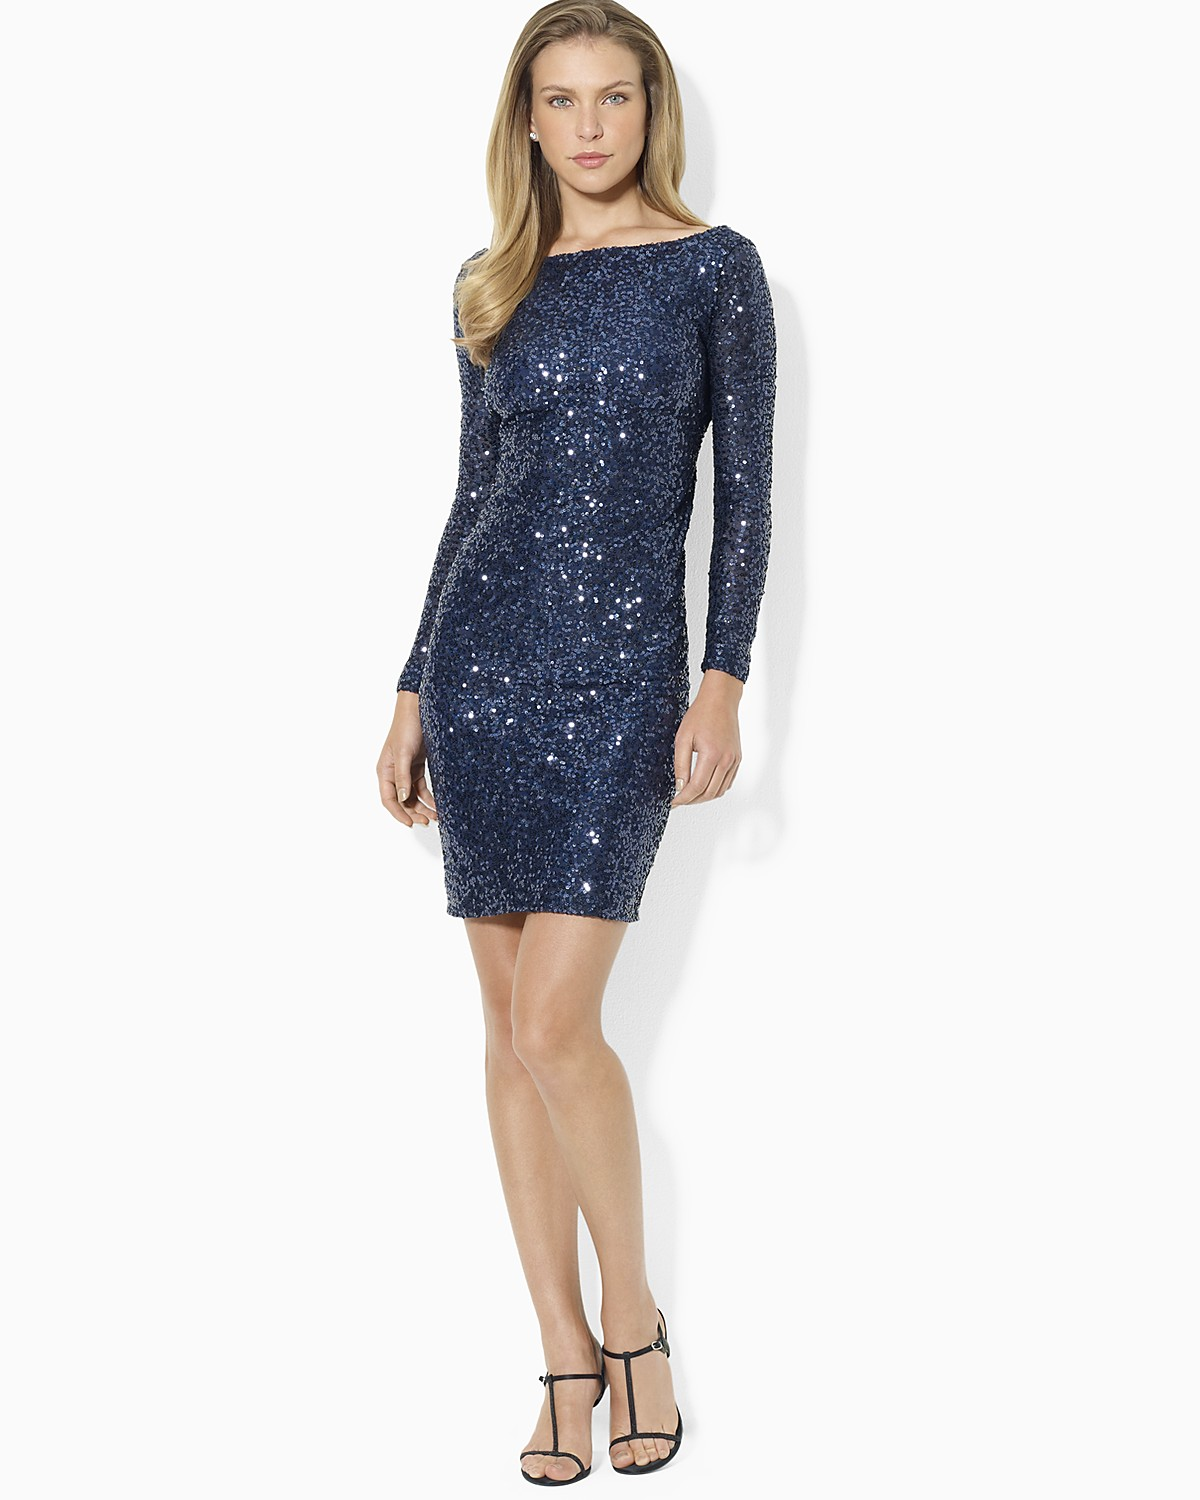 Add a little spark to your closet with Tobi's sequin dresses! The perfect cocktail dress for NYE, homecoming, parties & more! Shop now & get 50% off your first order!